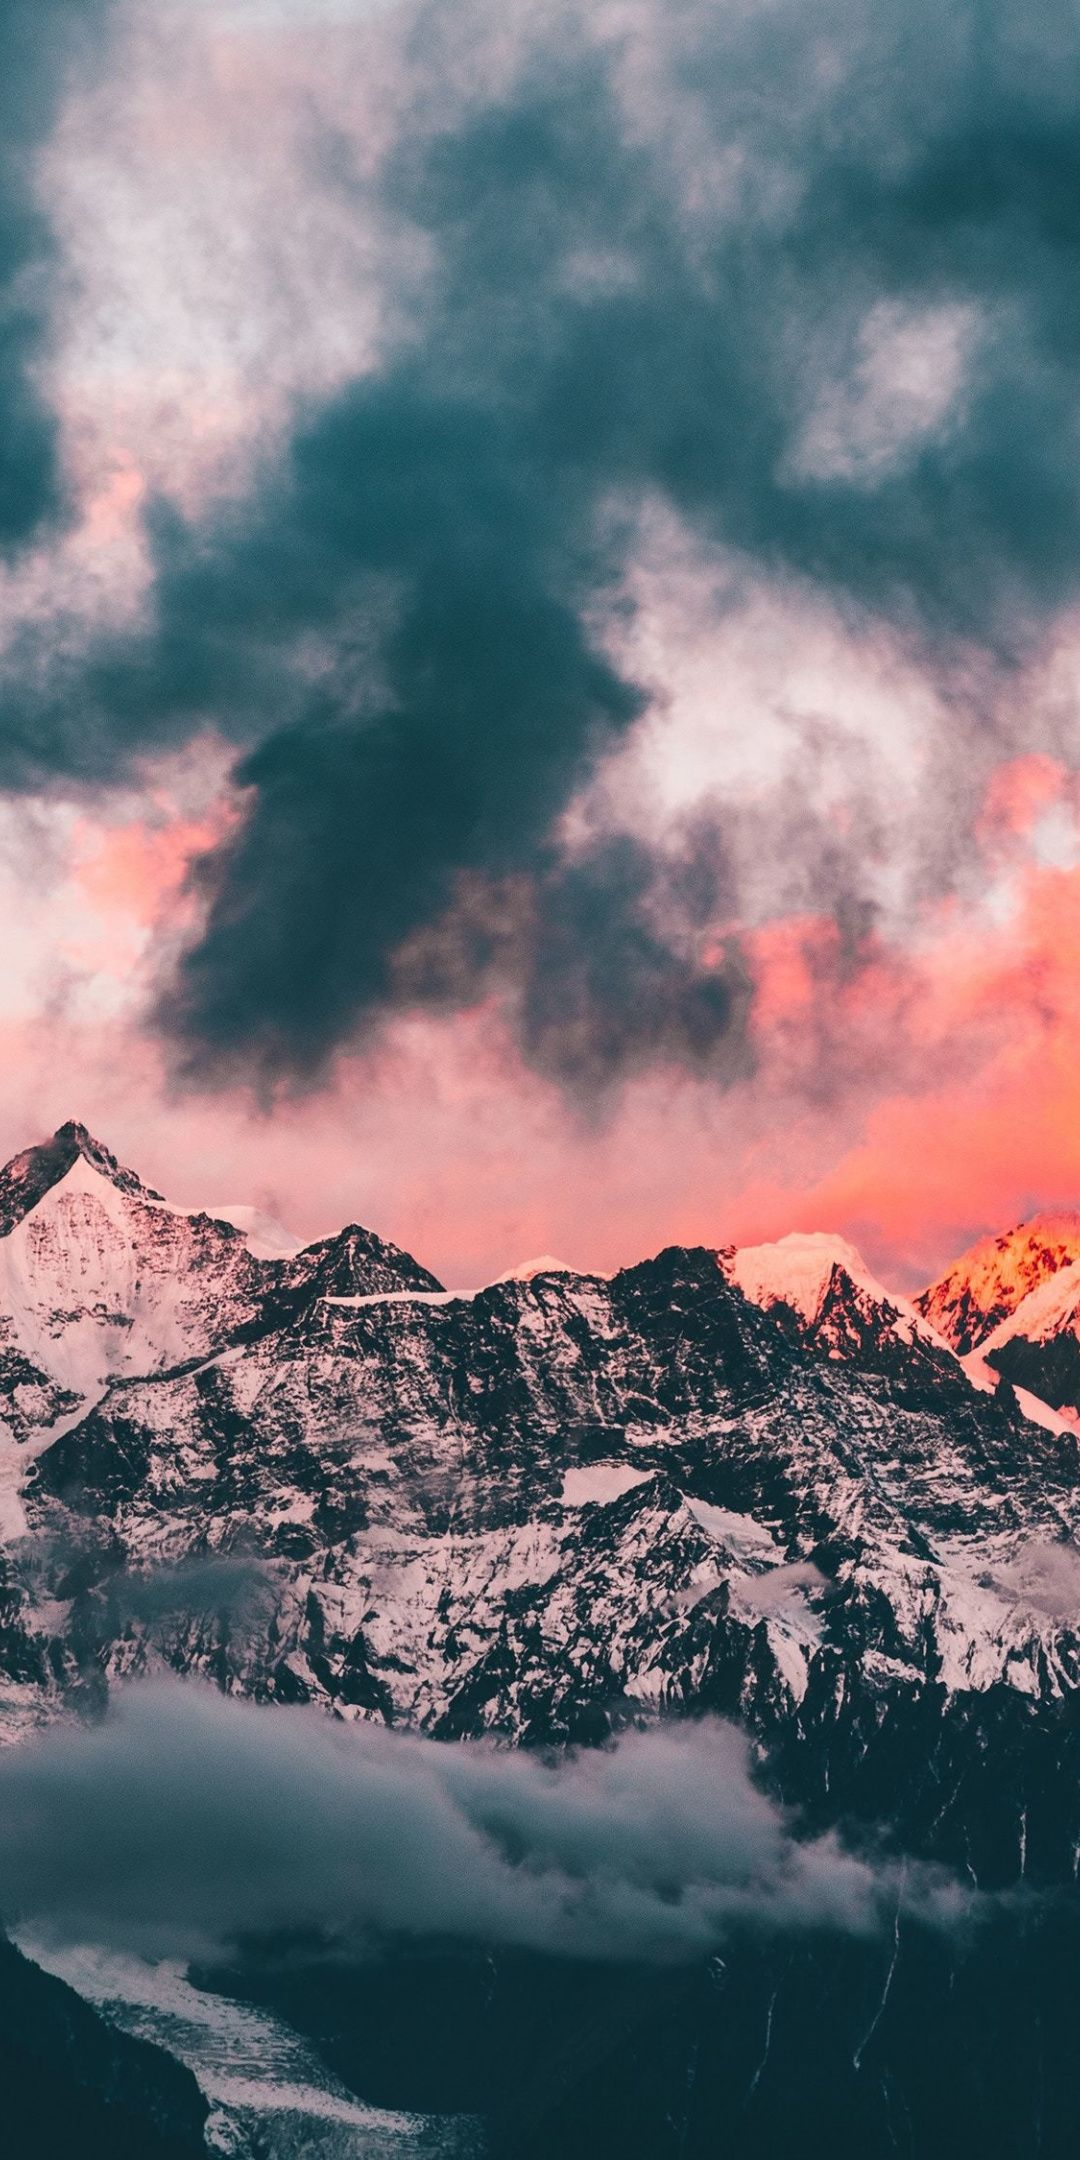 Clouds, sunset, glowing peaks, mountains, 1080x2160